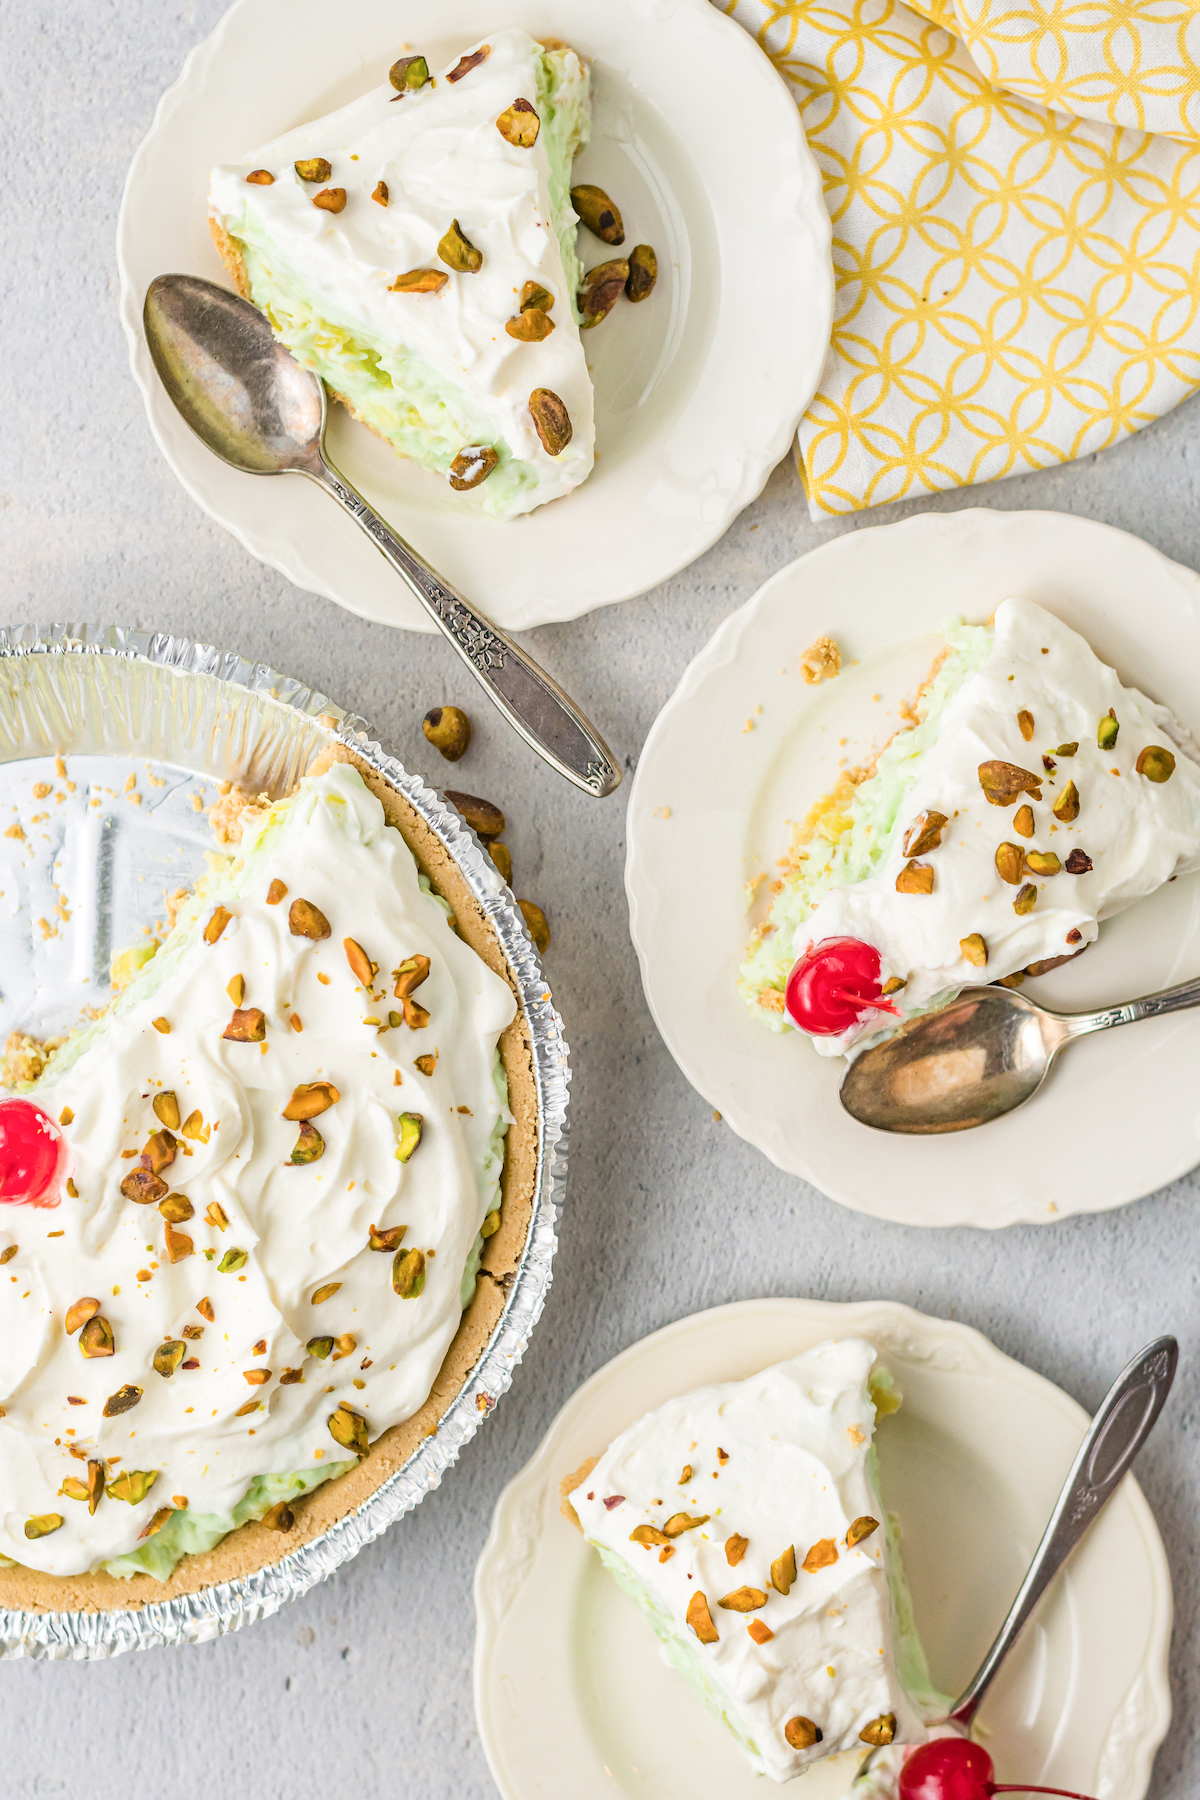 Overhead view of three slices of pistachio pie on serving plates next to the cut pie.